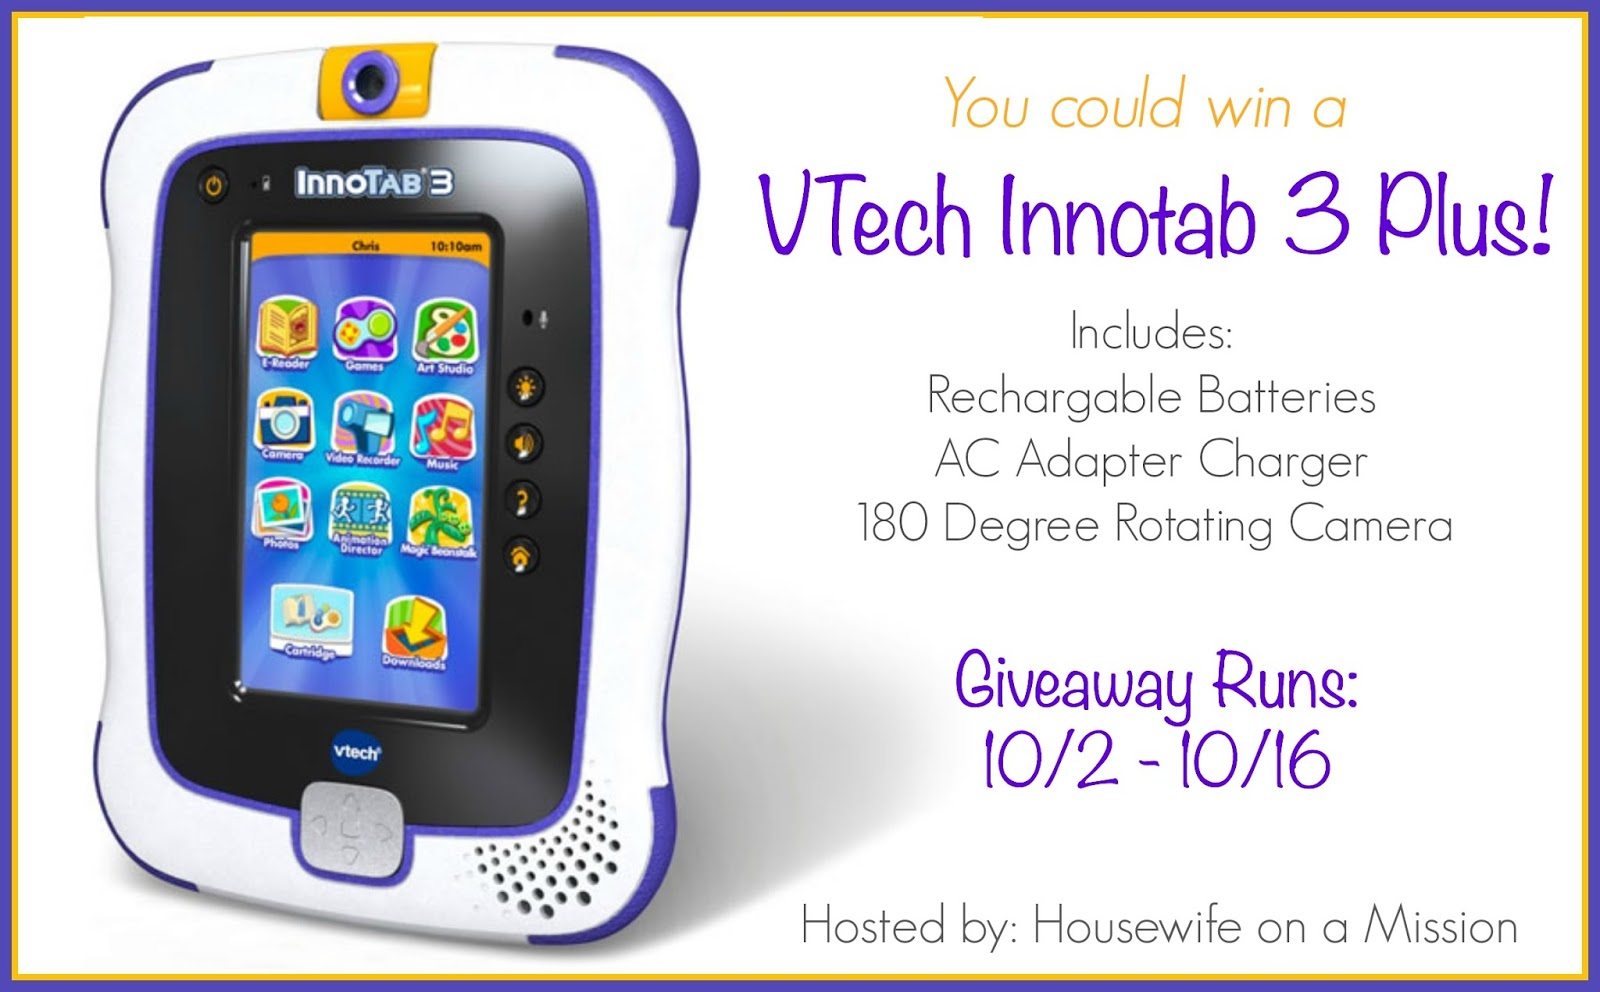 Enter Another VTech Innotab 3 Plus Giveaway. Ends 10/16